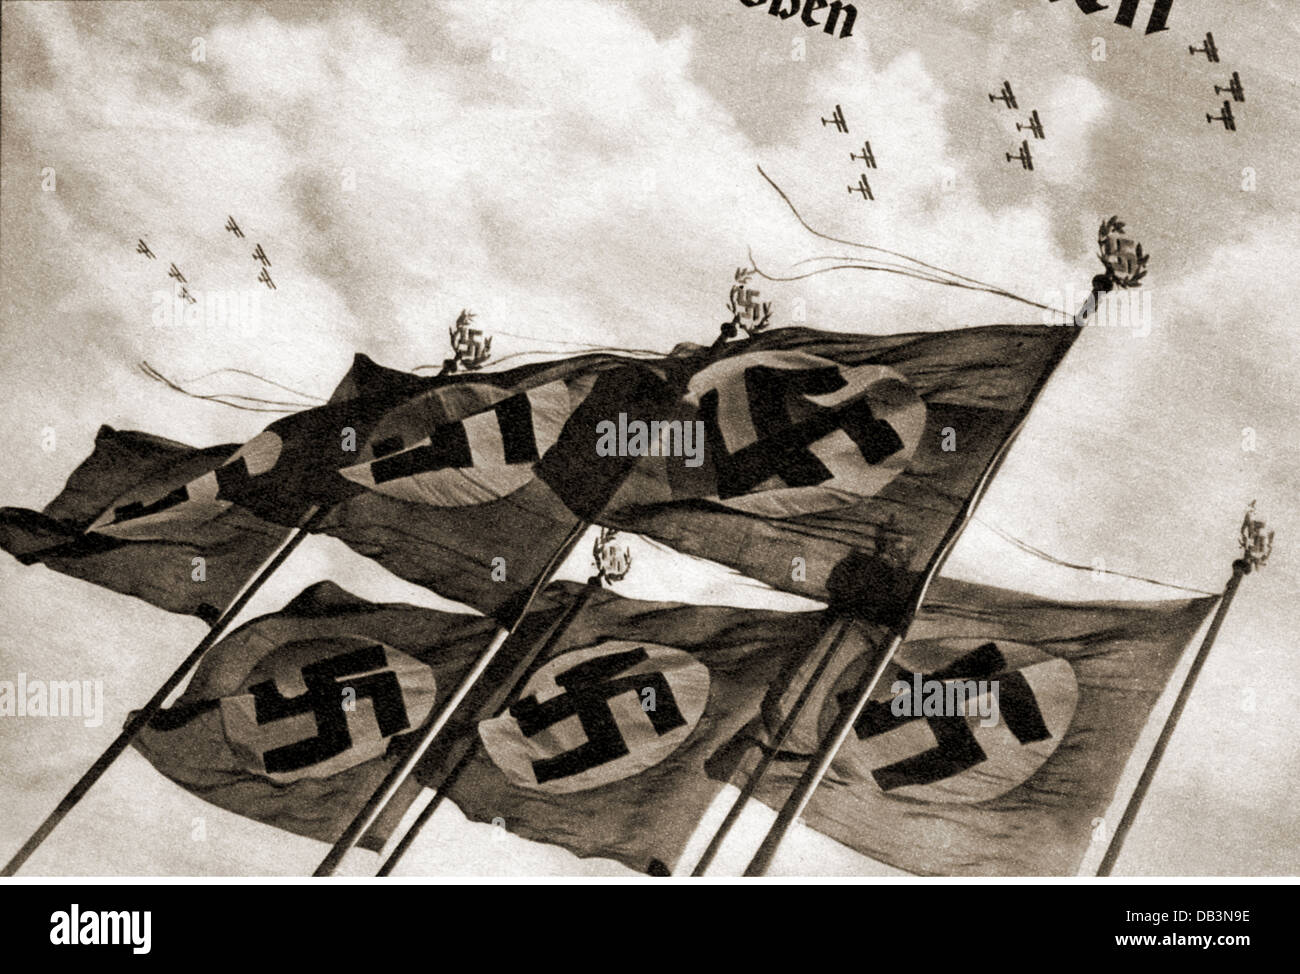 National Socialism / Nazism, emblems, swastika flags, illustration, from a magazine, circa 1935, Additional-Rights - Stock Image